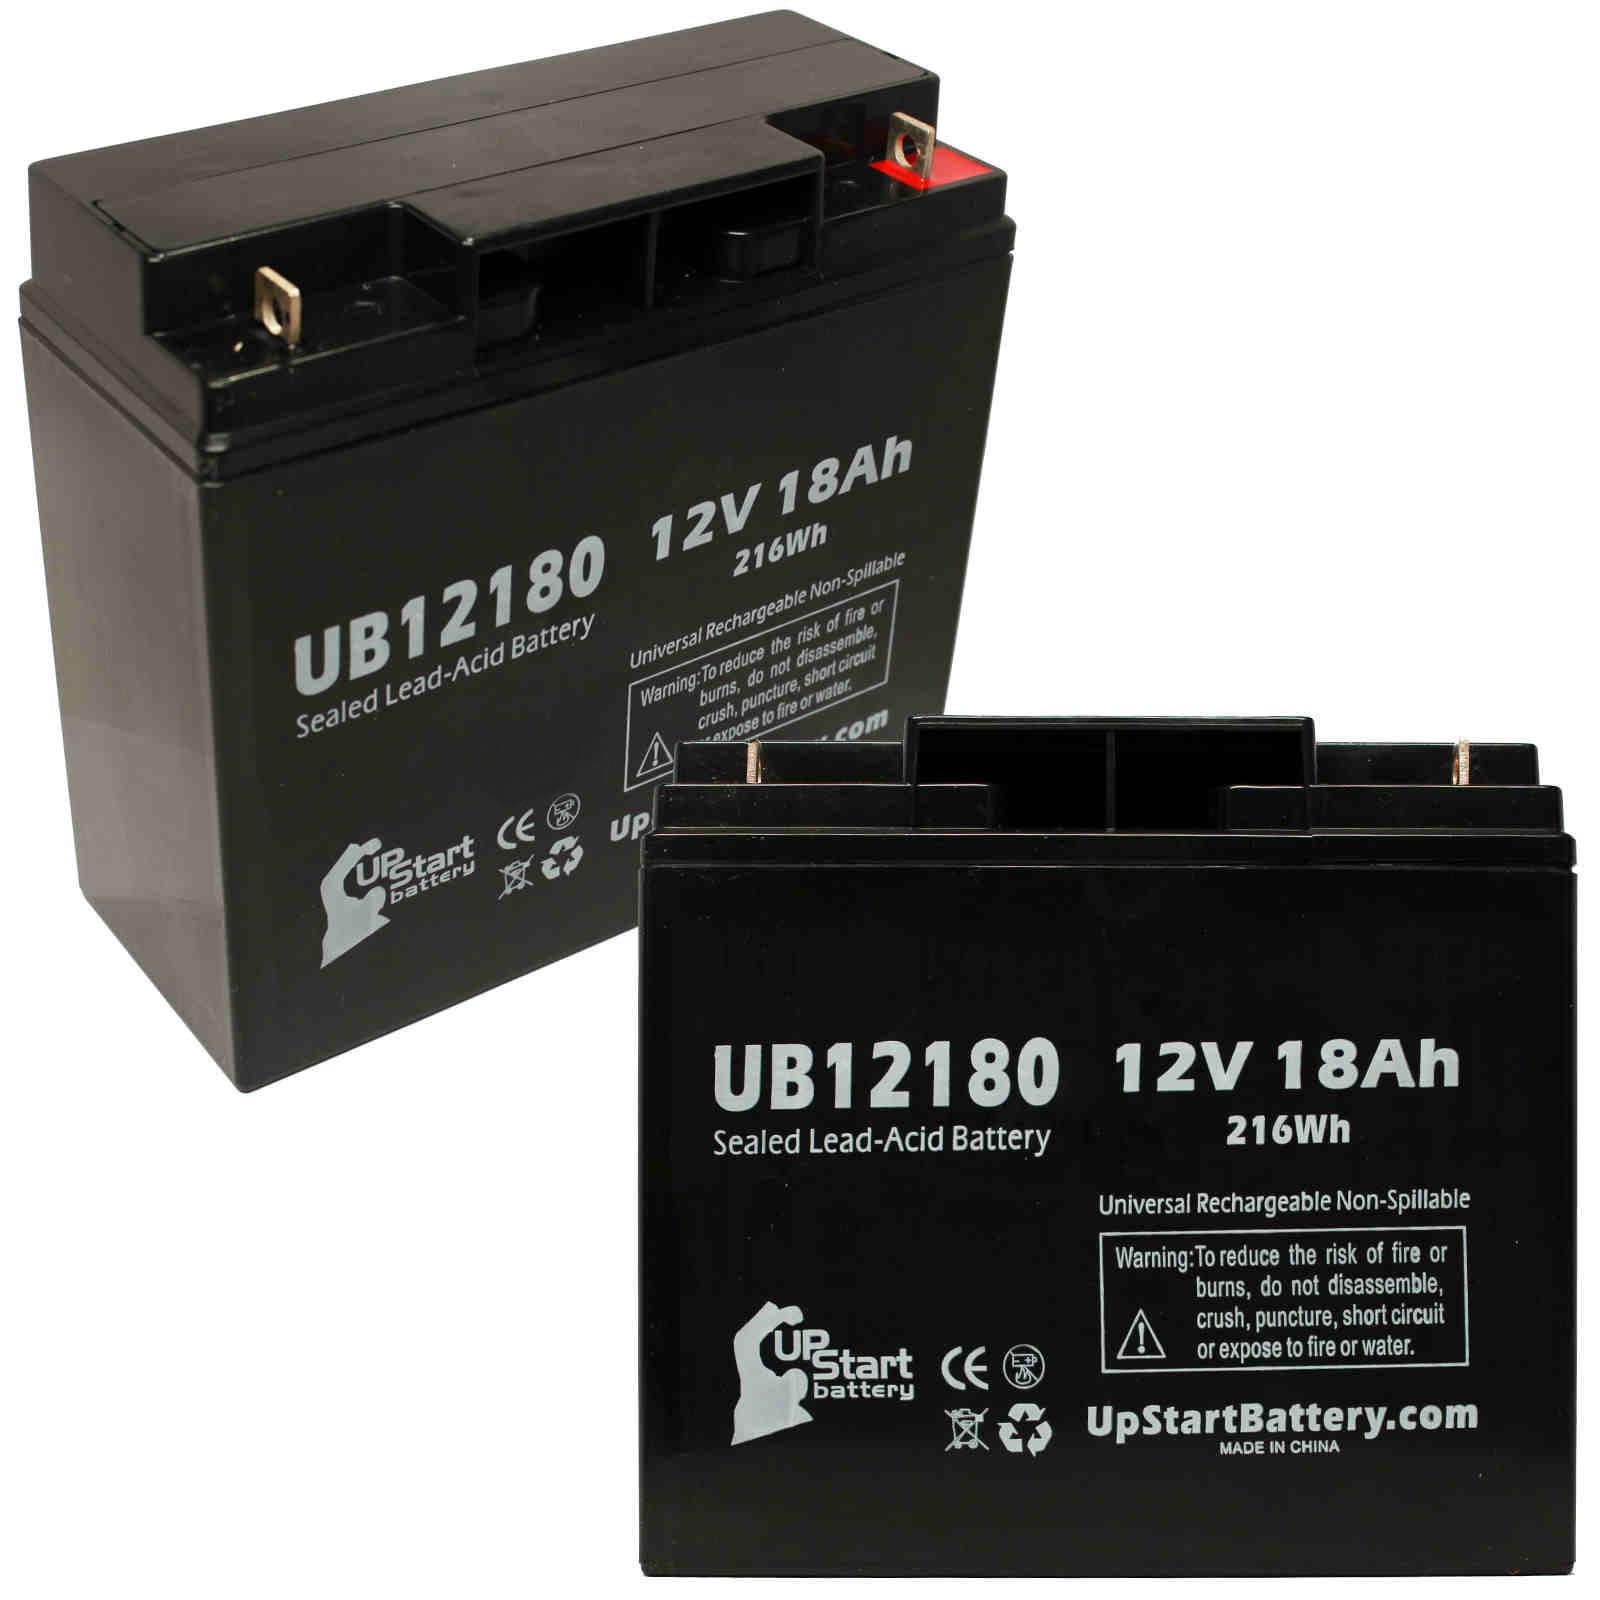 UpStart Battery 2x Pack - SEARS CRAFTSMAN DIEHARD PORTABLE POWER 1150 Battery - Replacement UB12180 SLA Battery (12V, 18Ah, T4 Terminal) at Sears.com